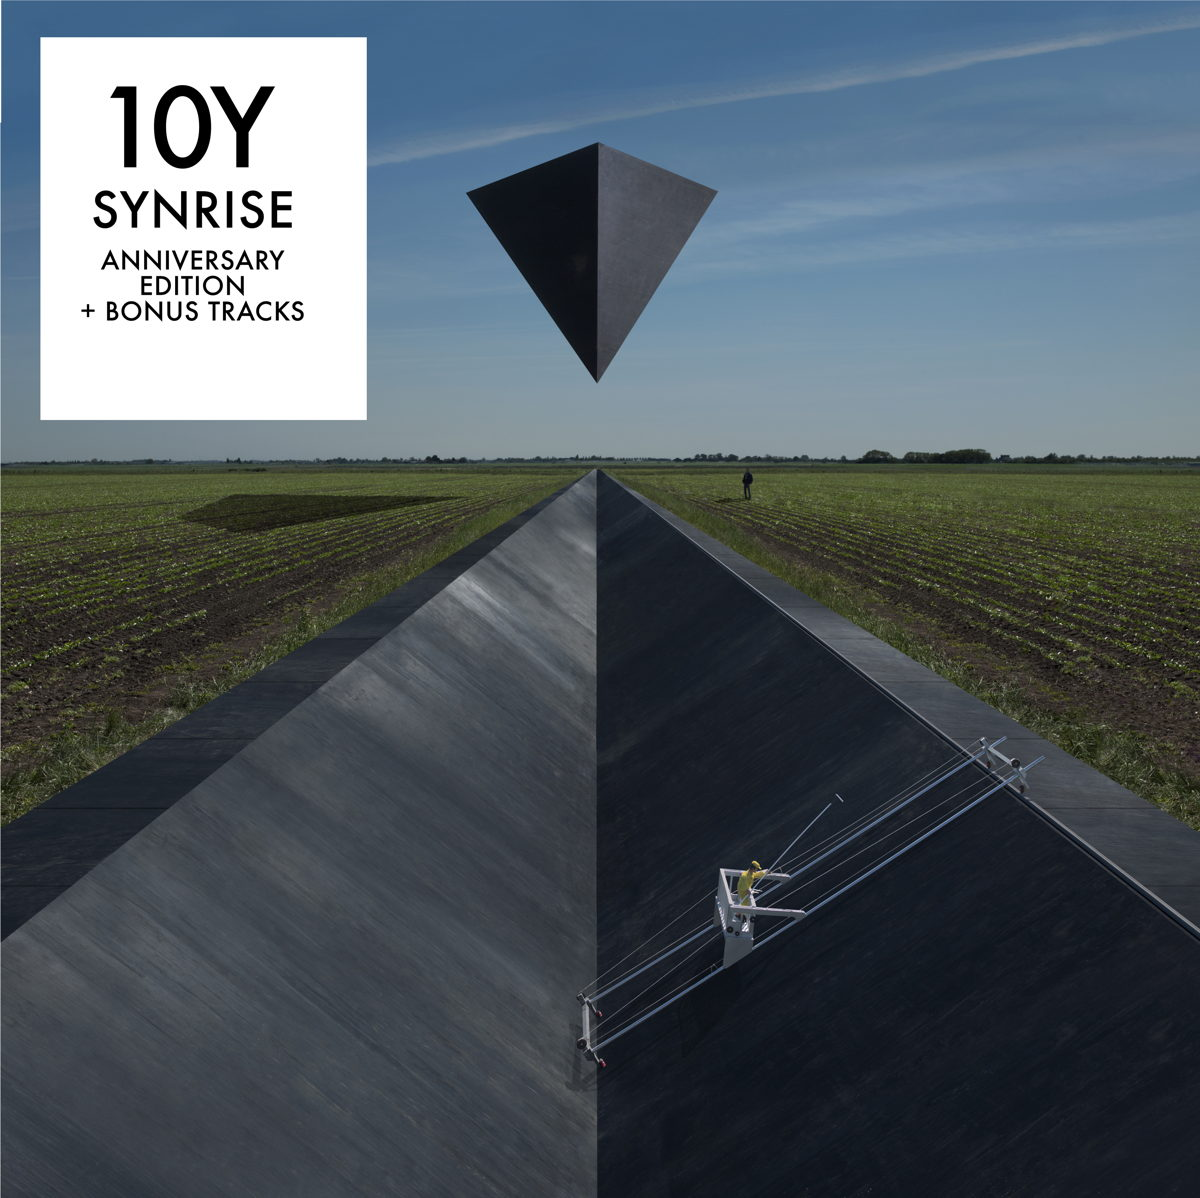 Cover of the 10Y SYNRISE album